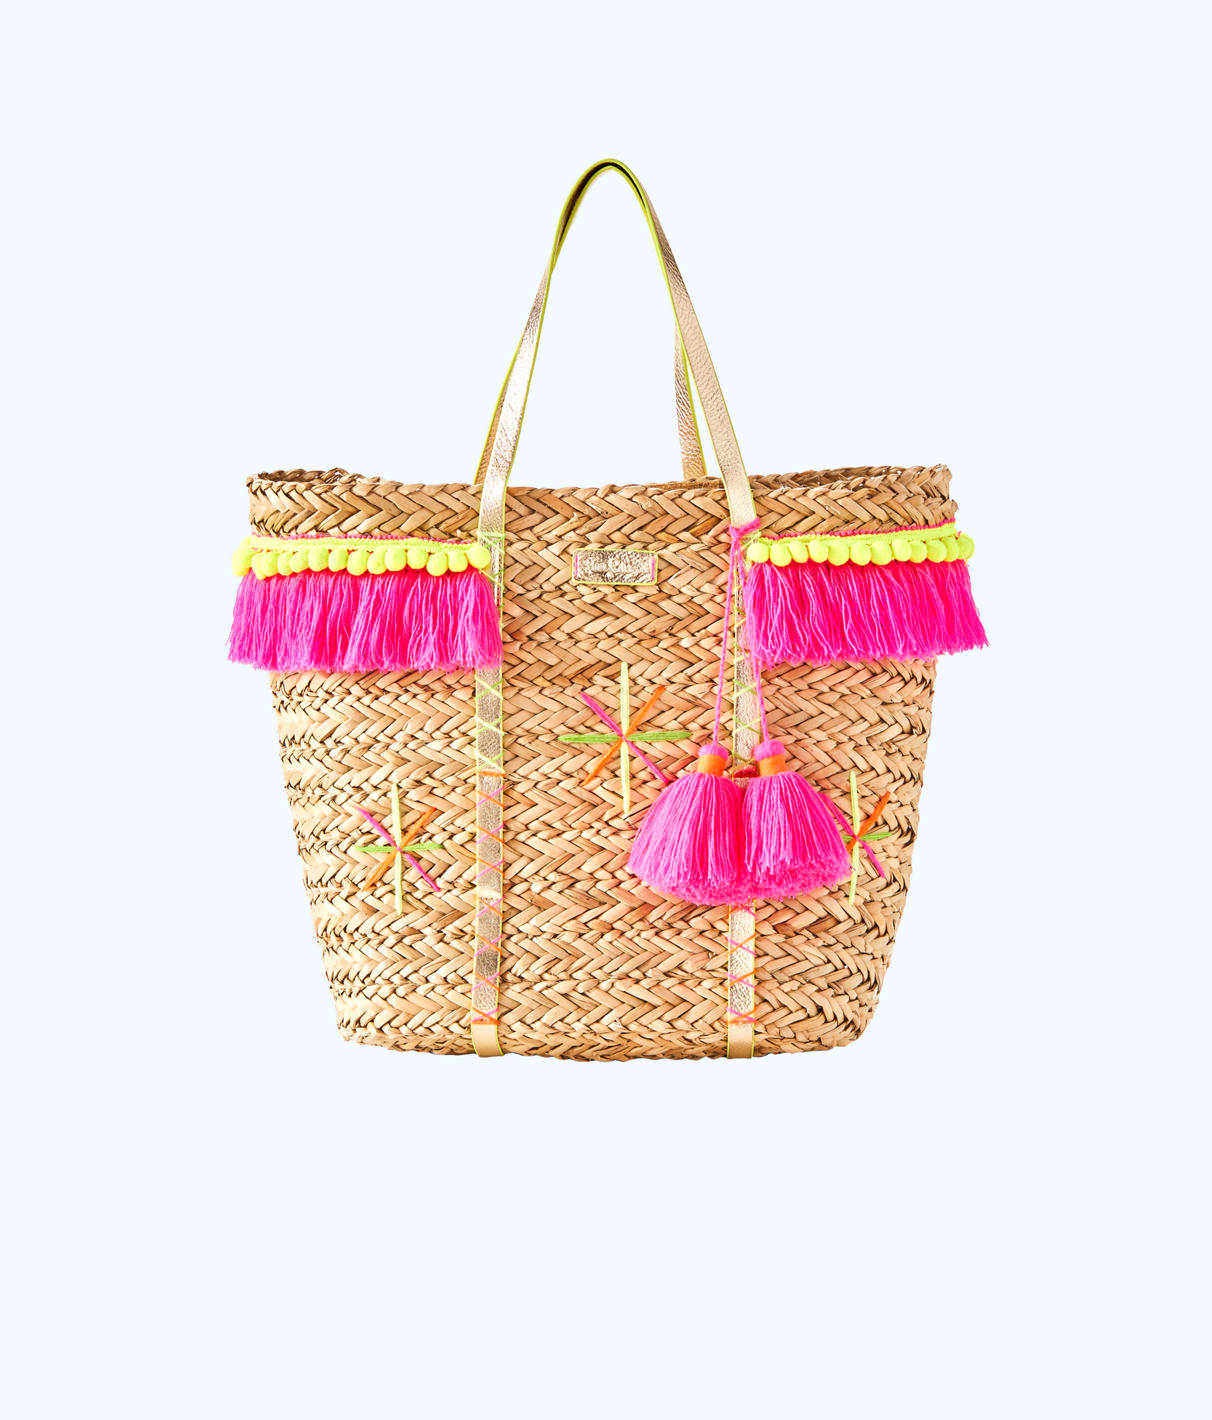 Lilly Pulitzer Lilly Pulitzer Baja Tote